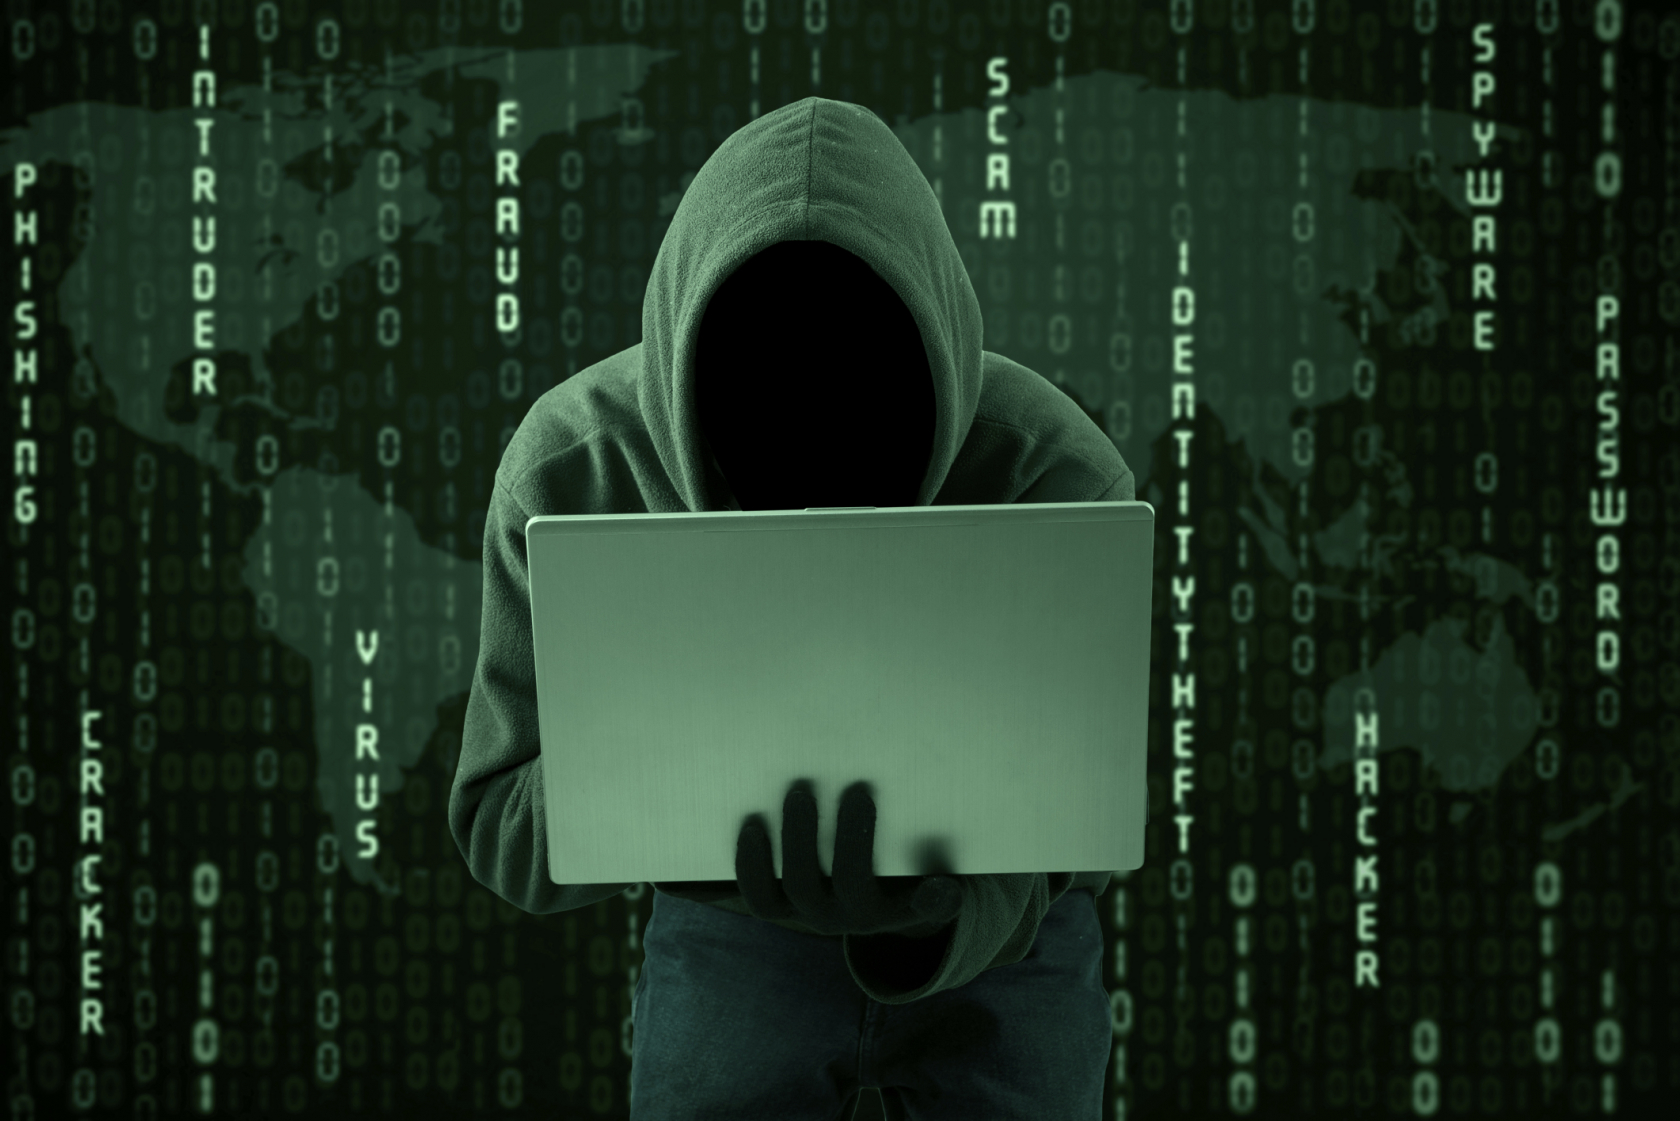 Security flaw found in Broadcom chipset allows hackers to hijack